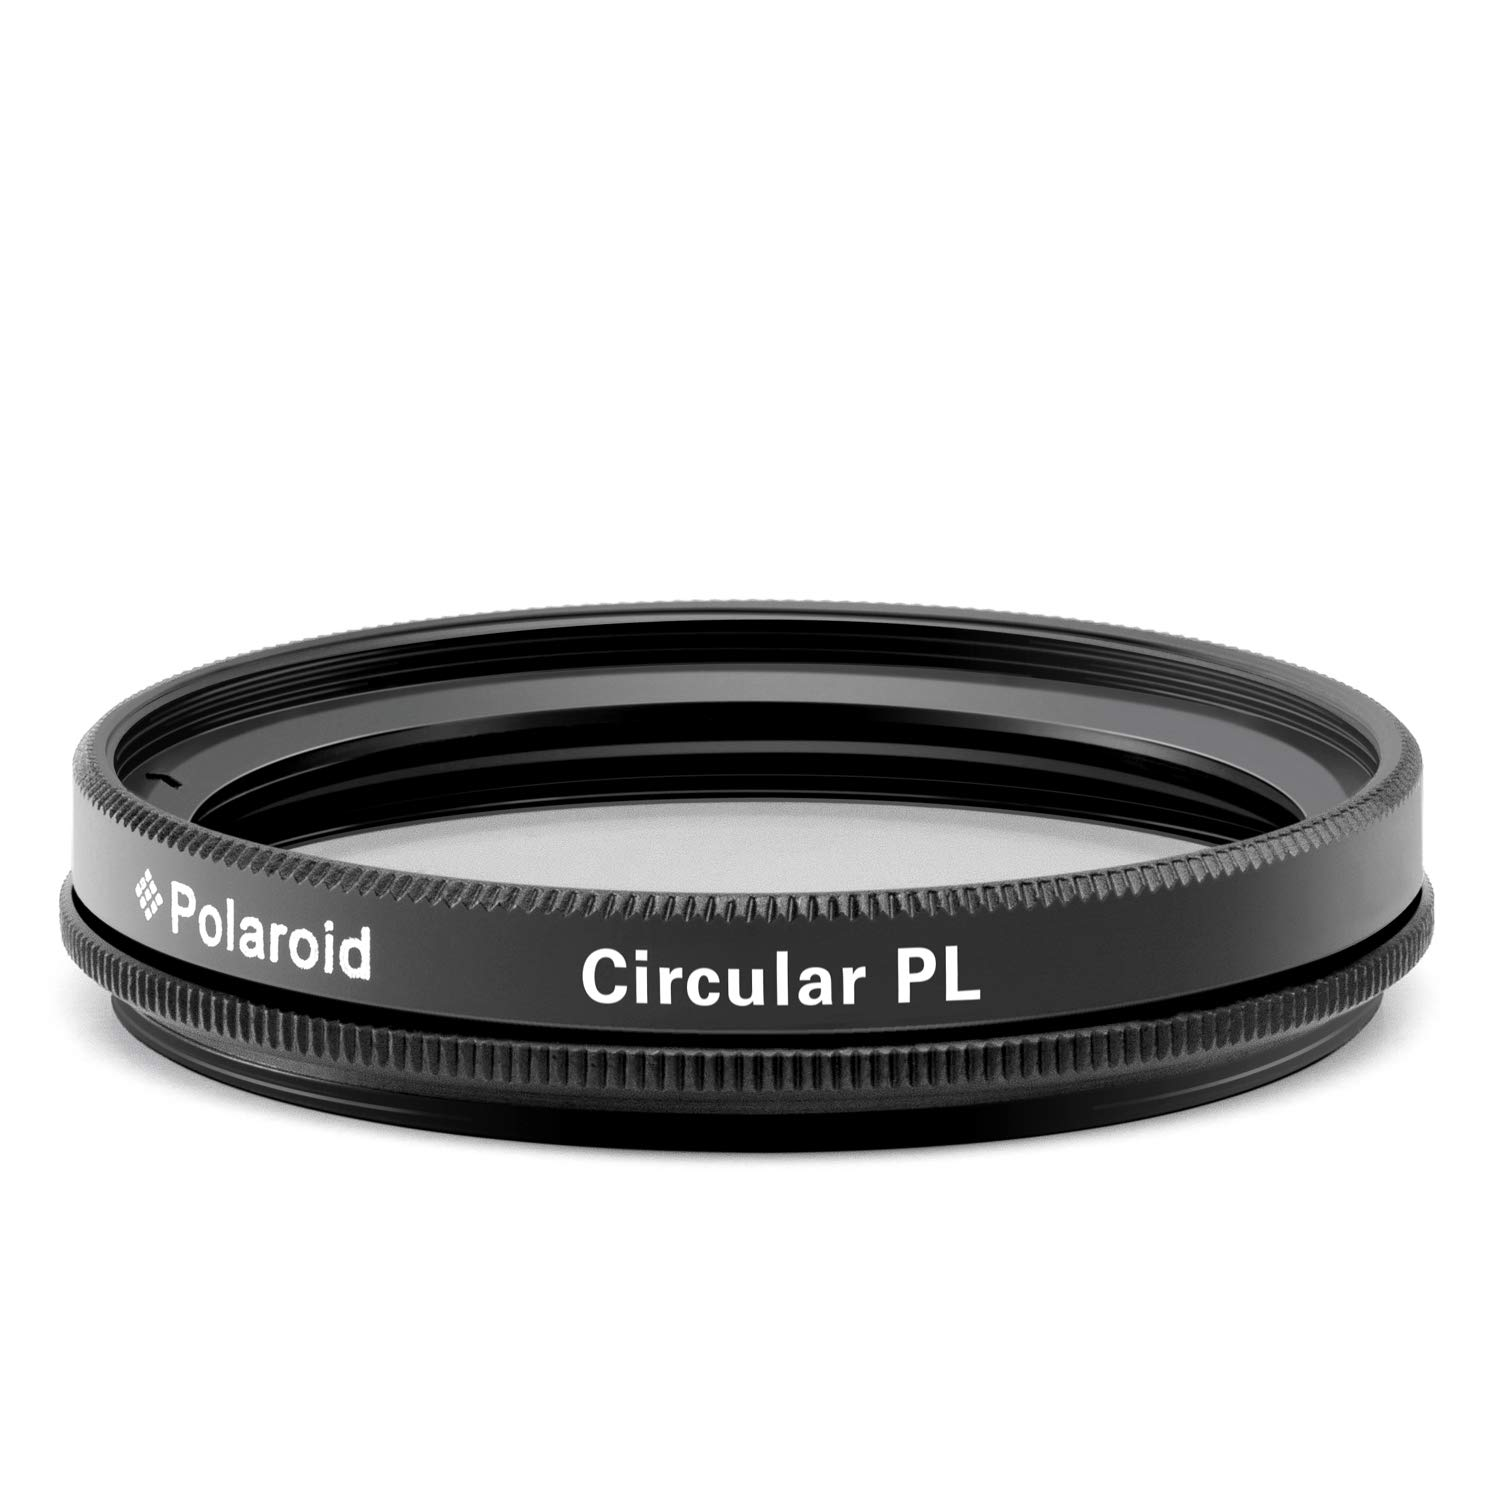 C-PL Circular Polarizer Multicoated 37mm Multithreaded Glass Filter For Olympus E-PL5